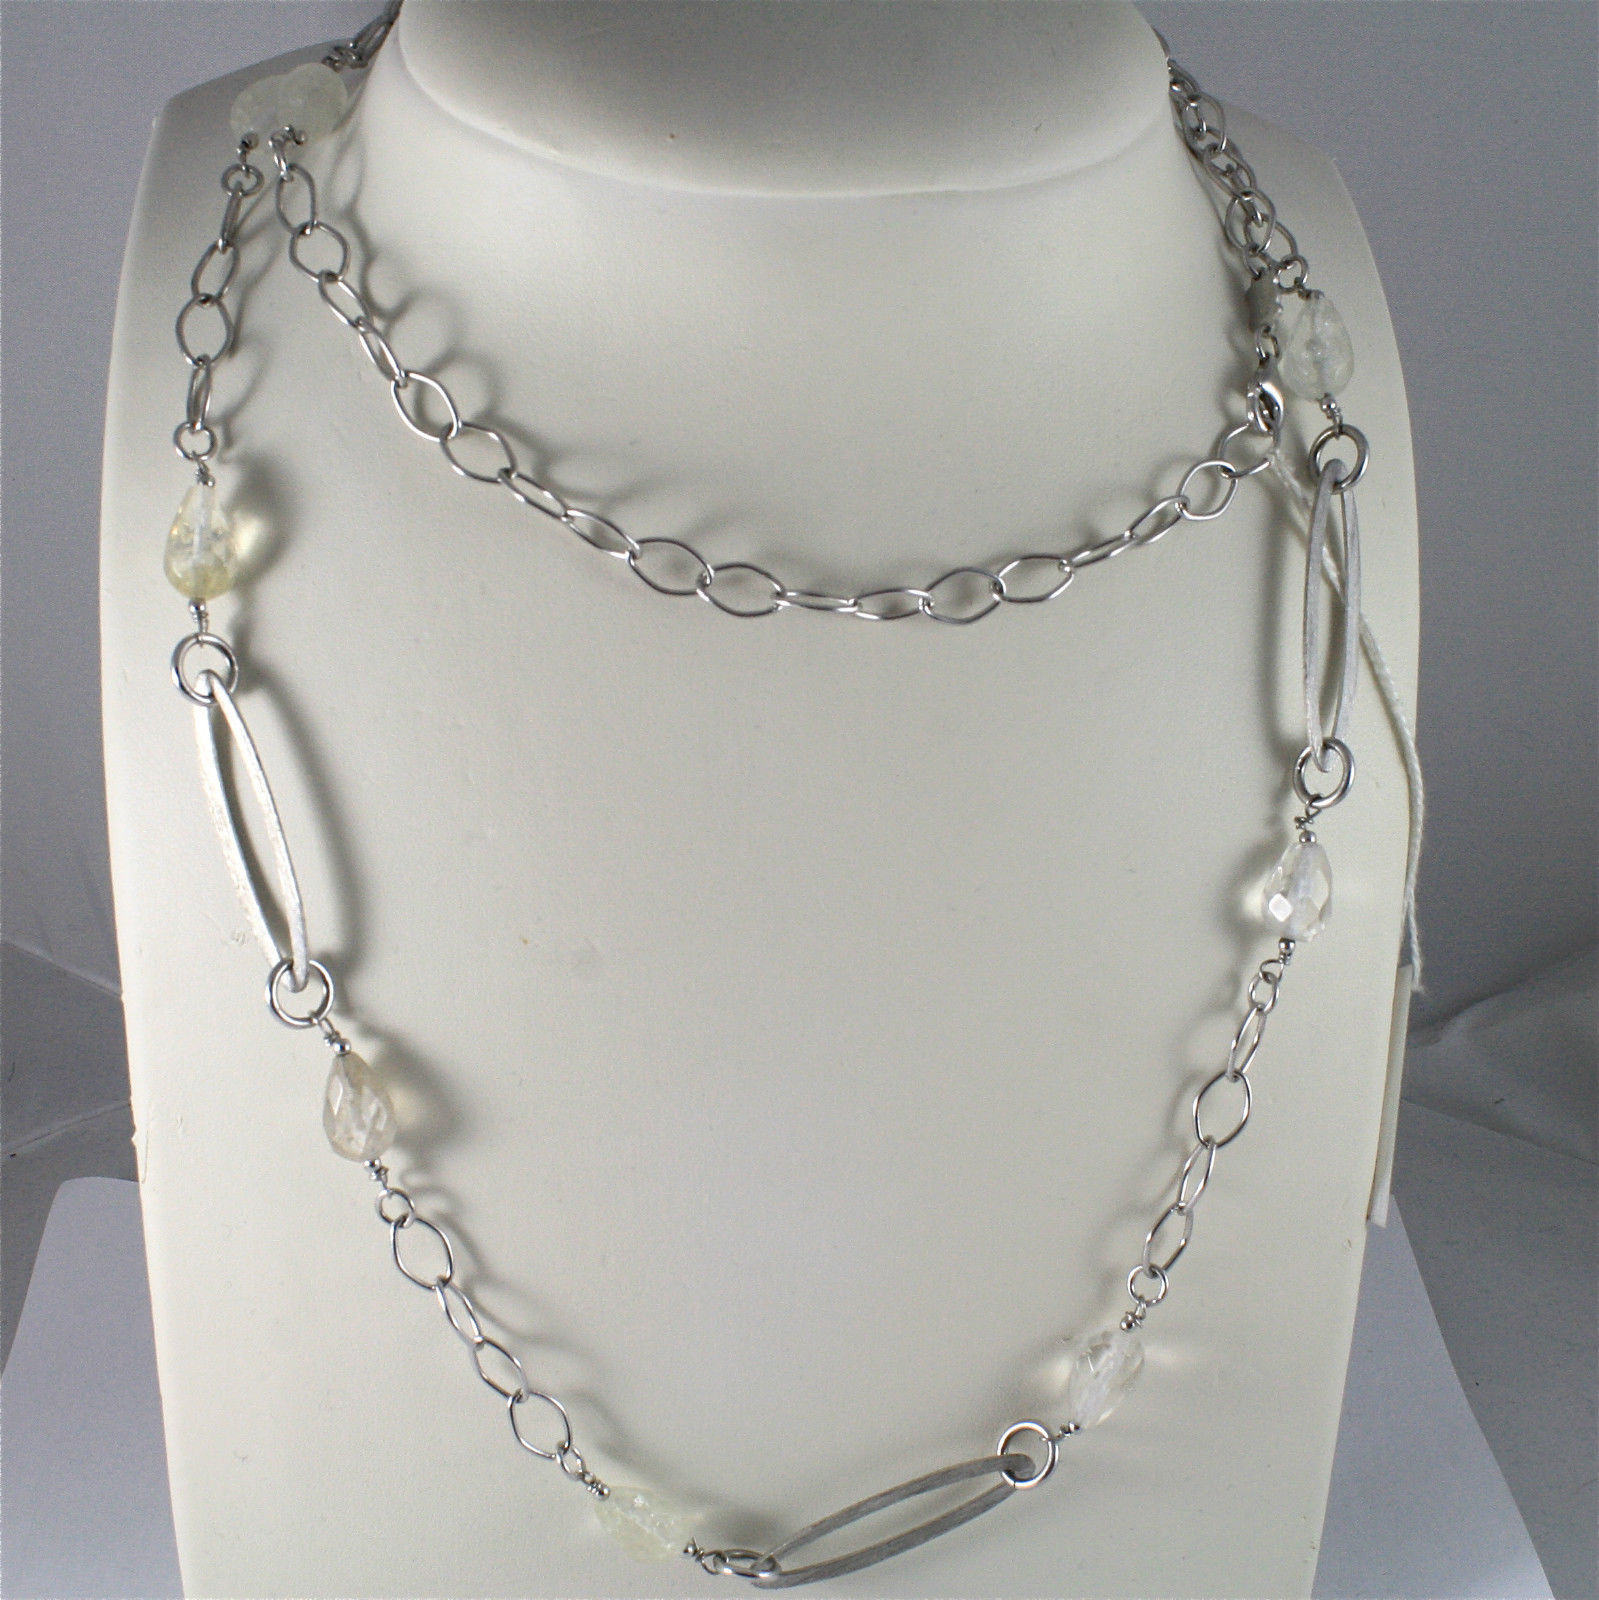 .925 RHODIUM SILVER NECKLACE WITH CRACK CRISTAL FACETED DROPS, SATIN OVAL MESH.